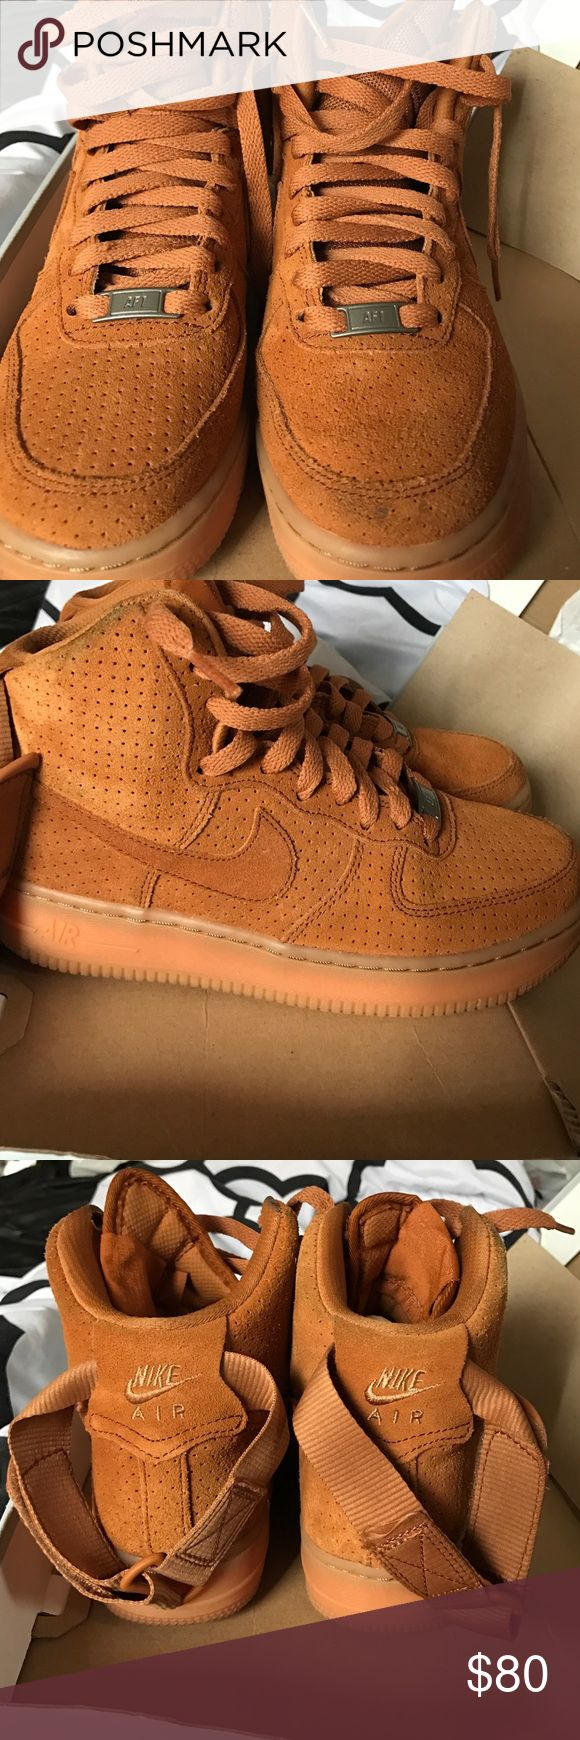 Women's Air Force 1 Hitop Suede Authentic Dark Camel Hightop Air Force 1 tennis shoe. There is a small dark mark on the front that is shown in the picture. This can be cleaned if you have some suede shoe cleaner. Nike Shoes Sneakers